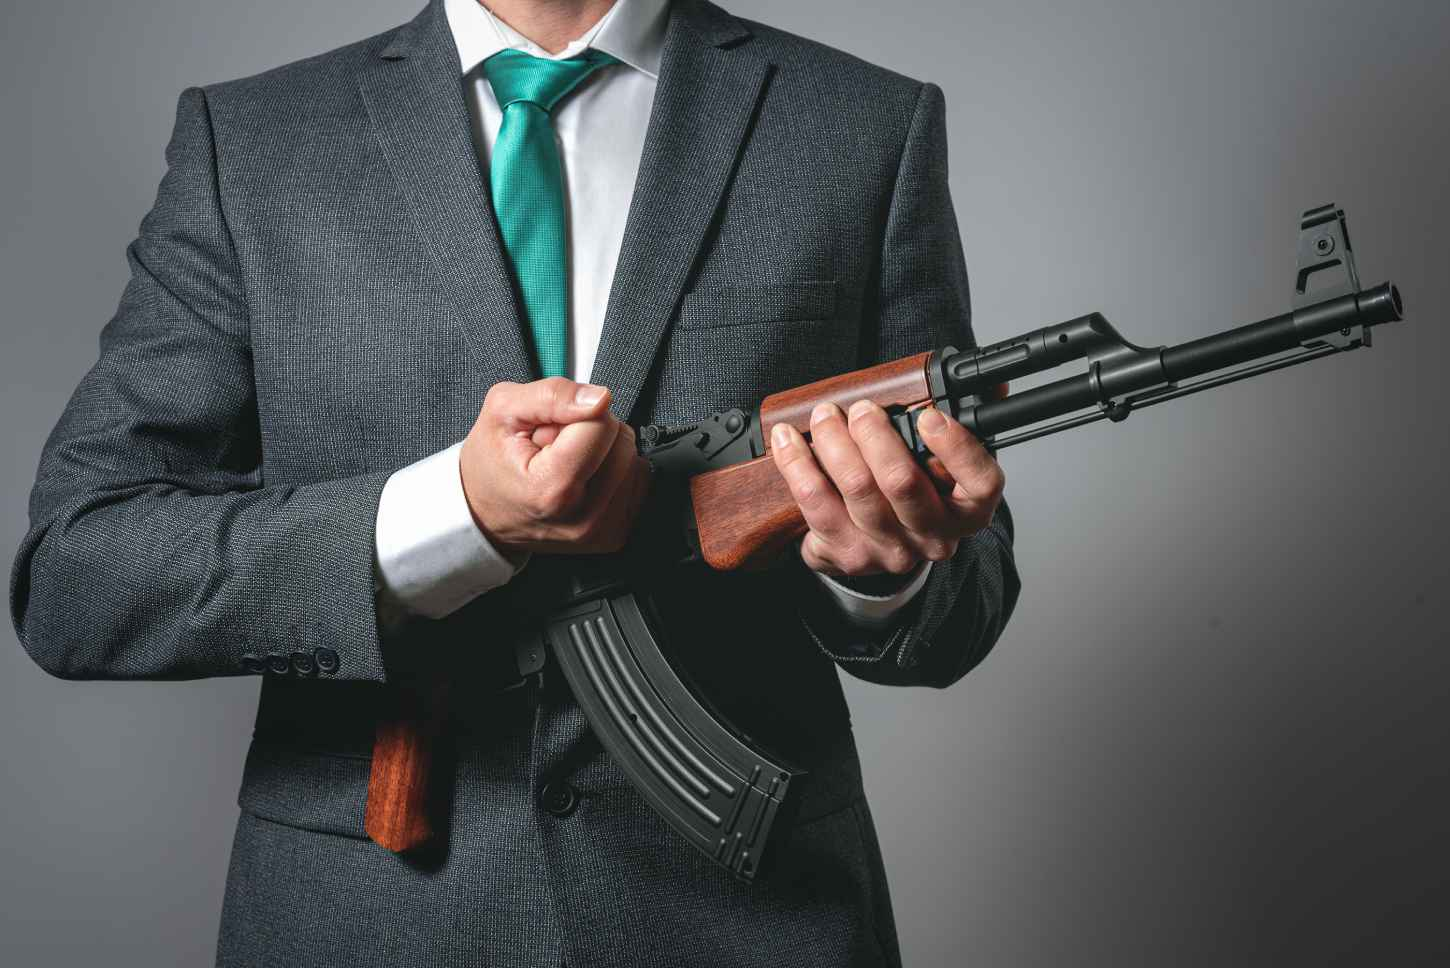 businessman loading an automatic weapon